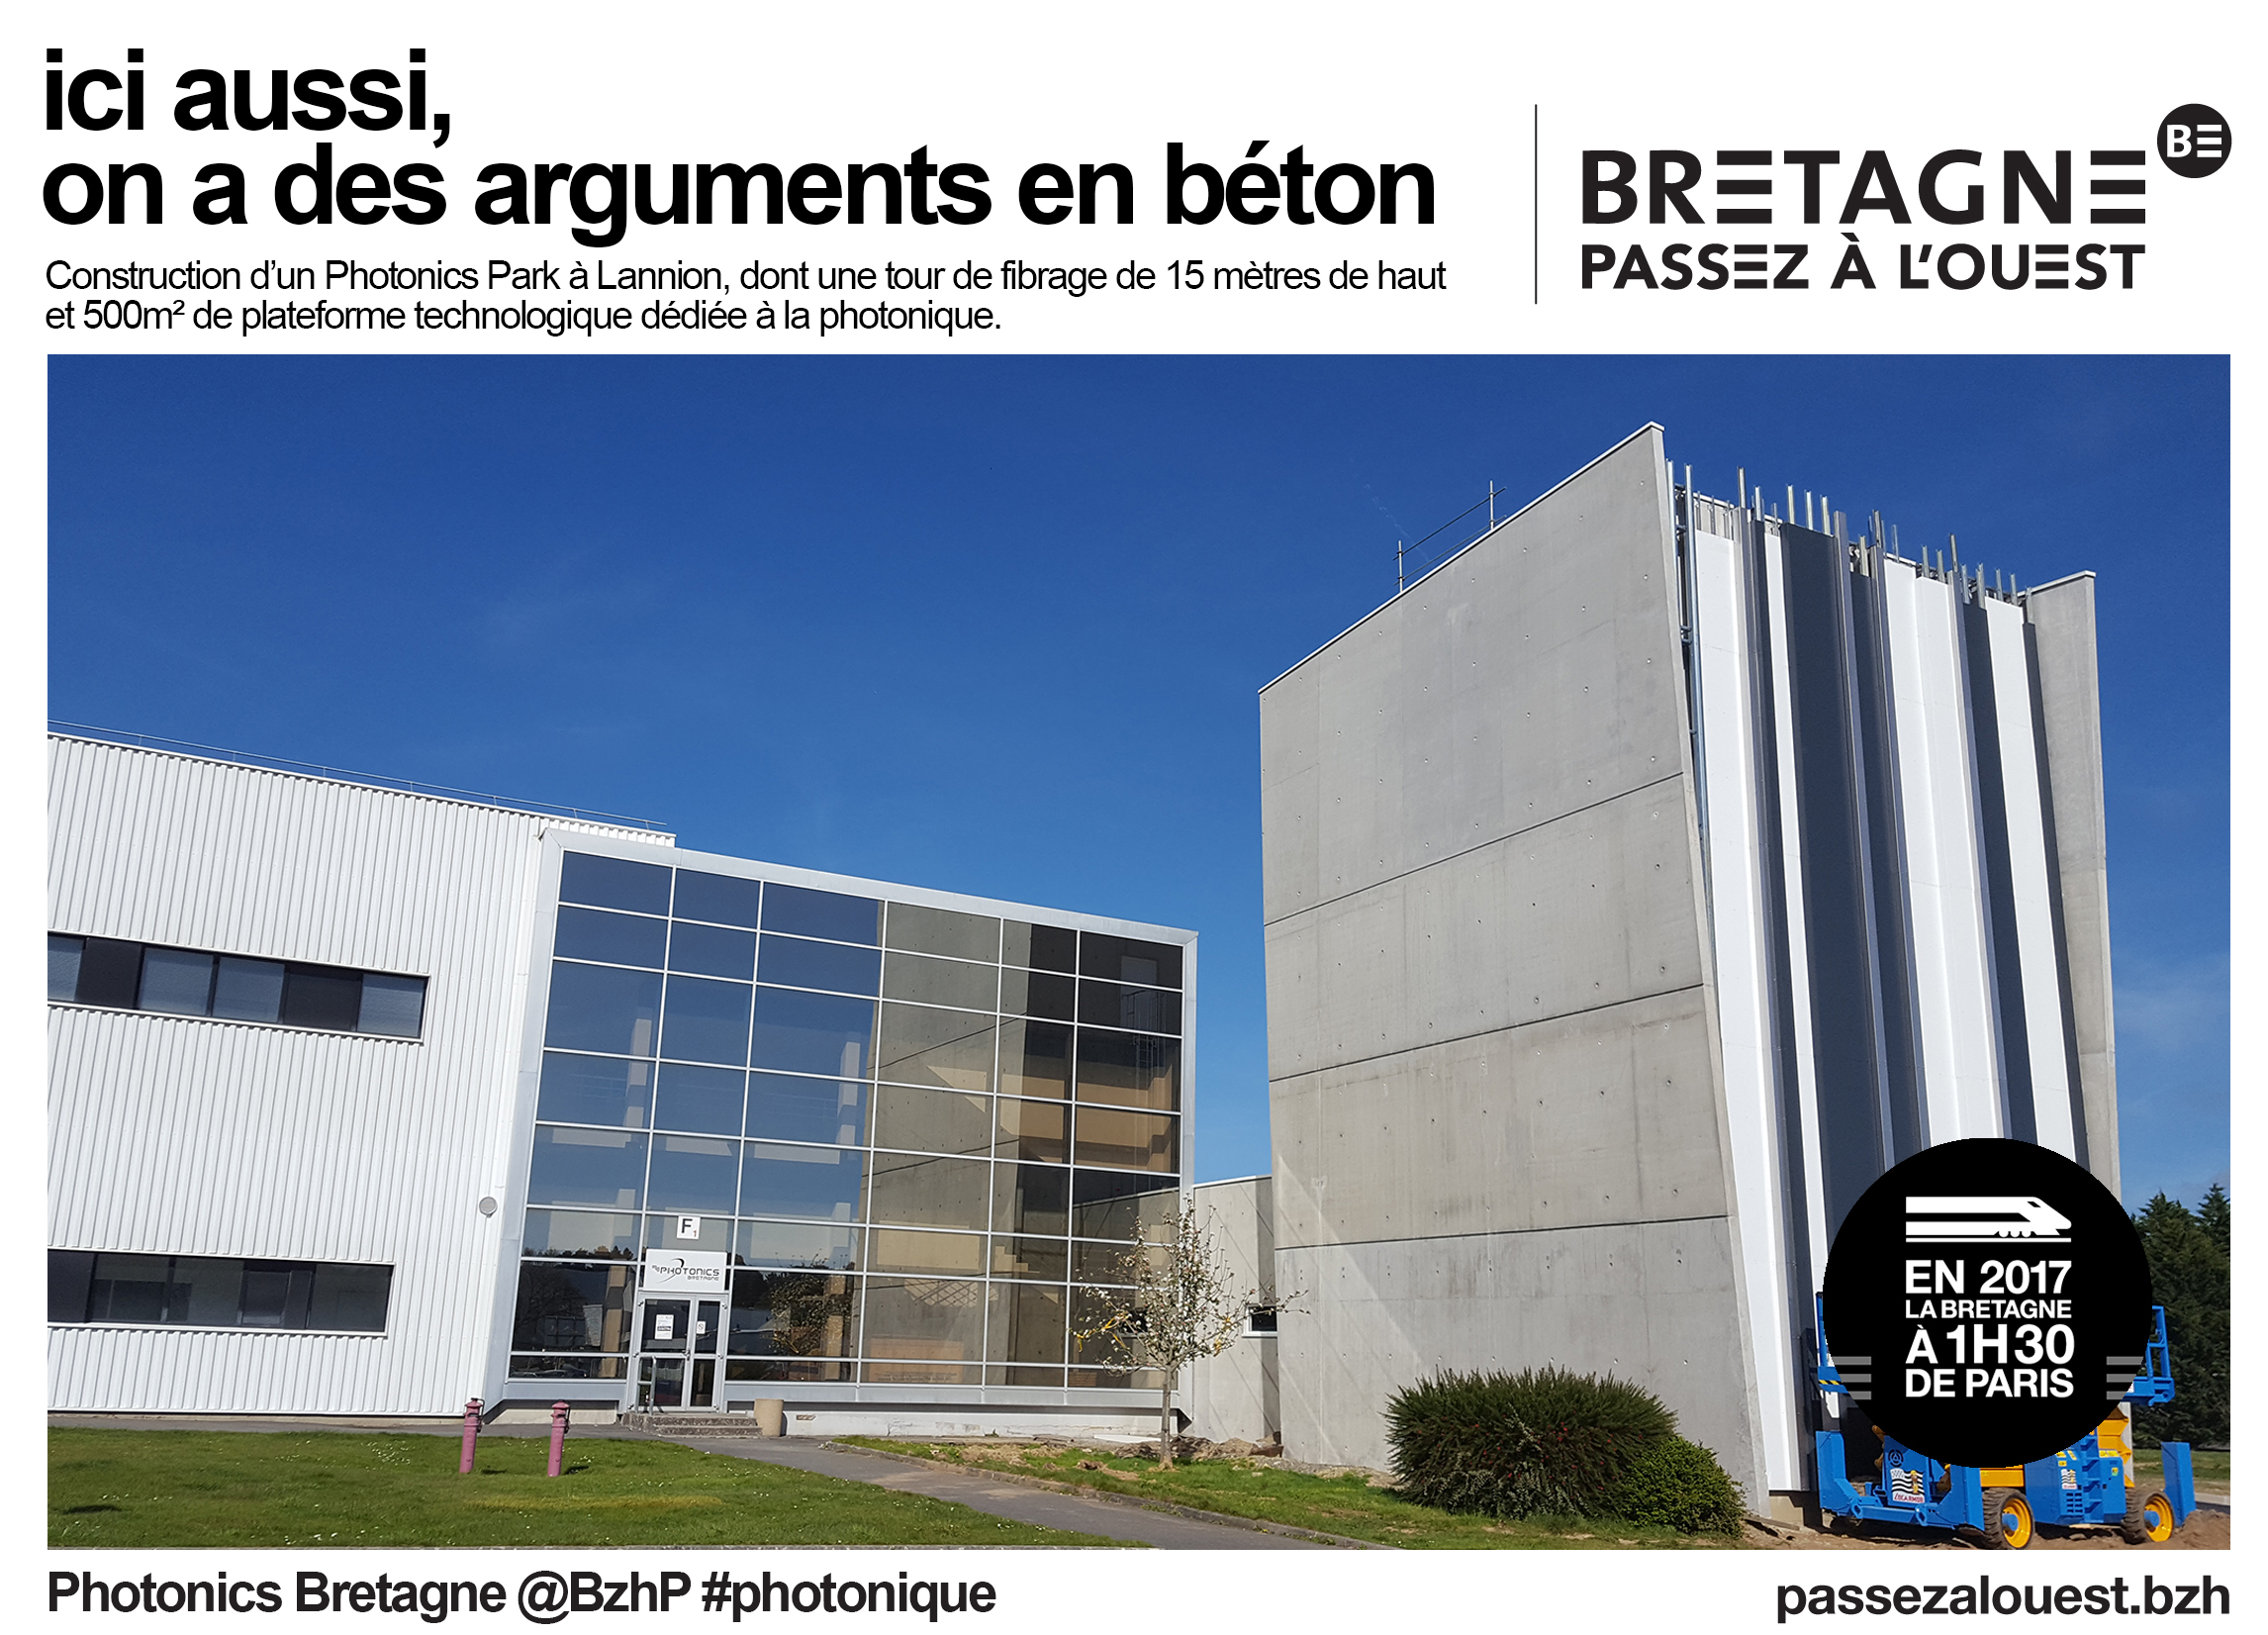 PhotonicsPark-arguments-beton